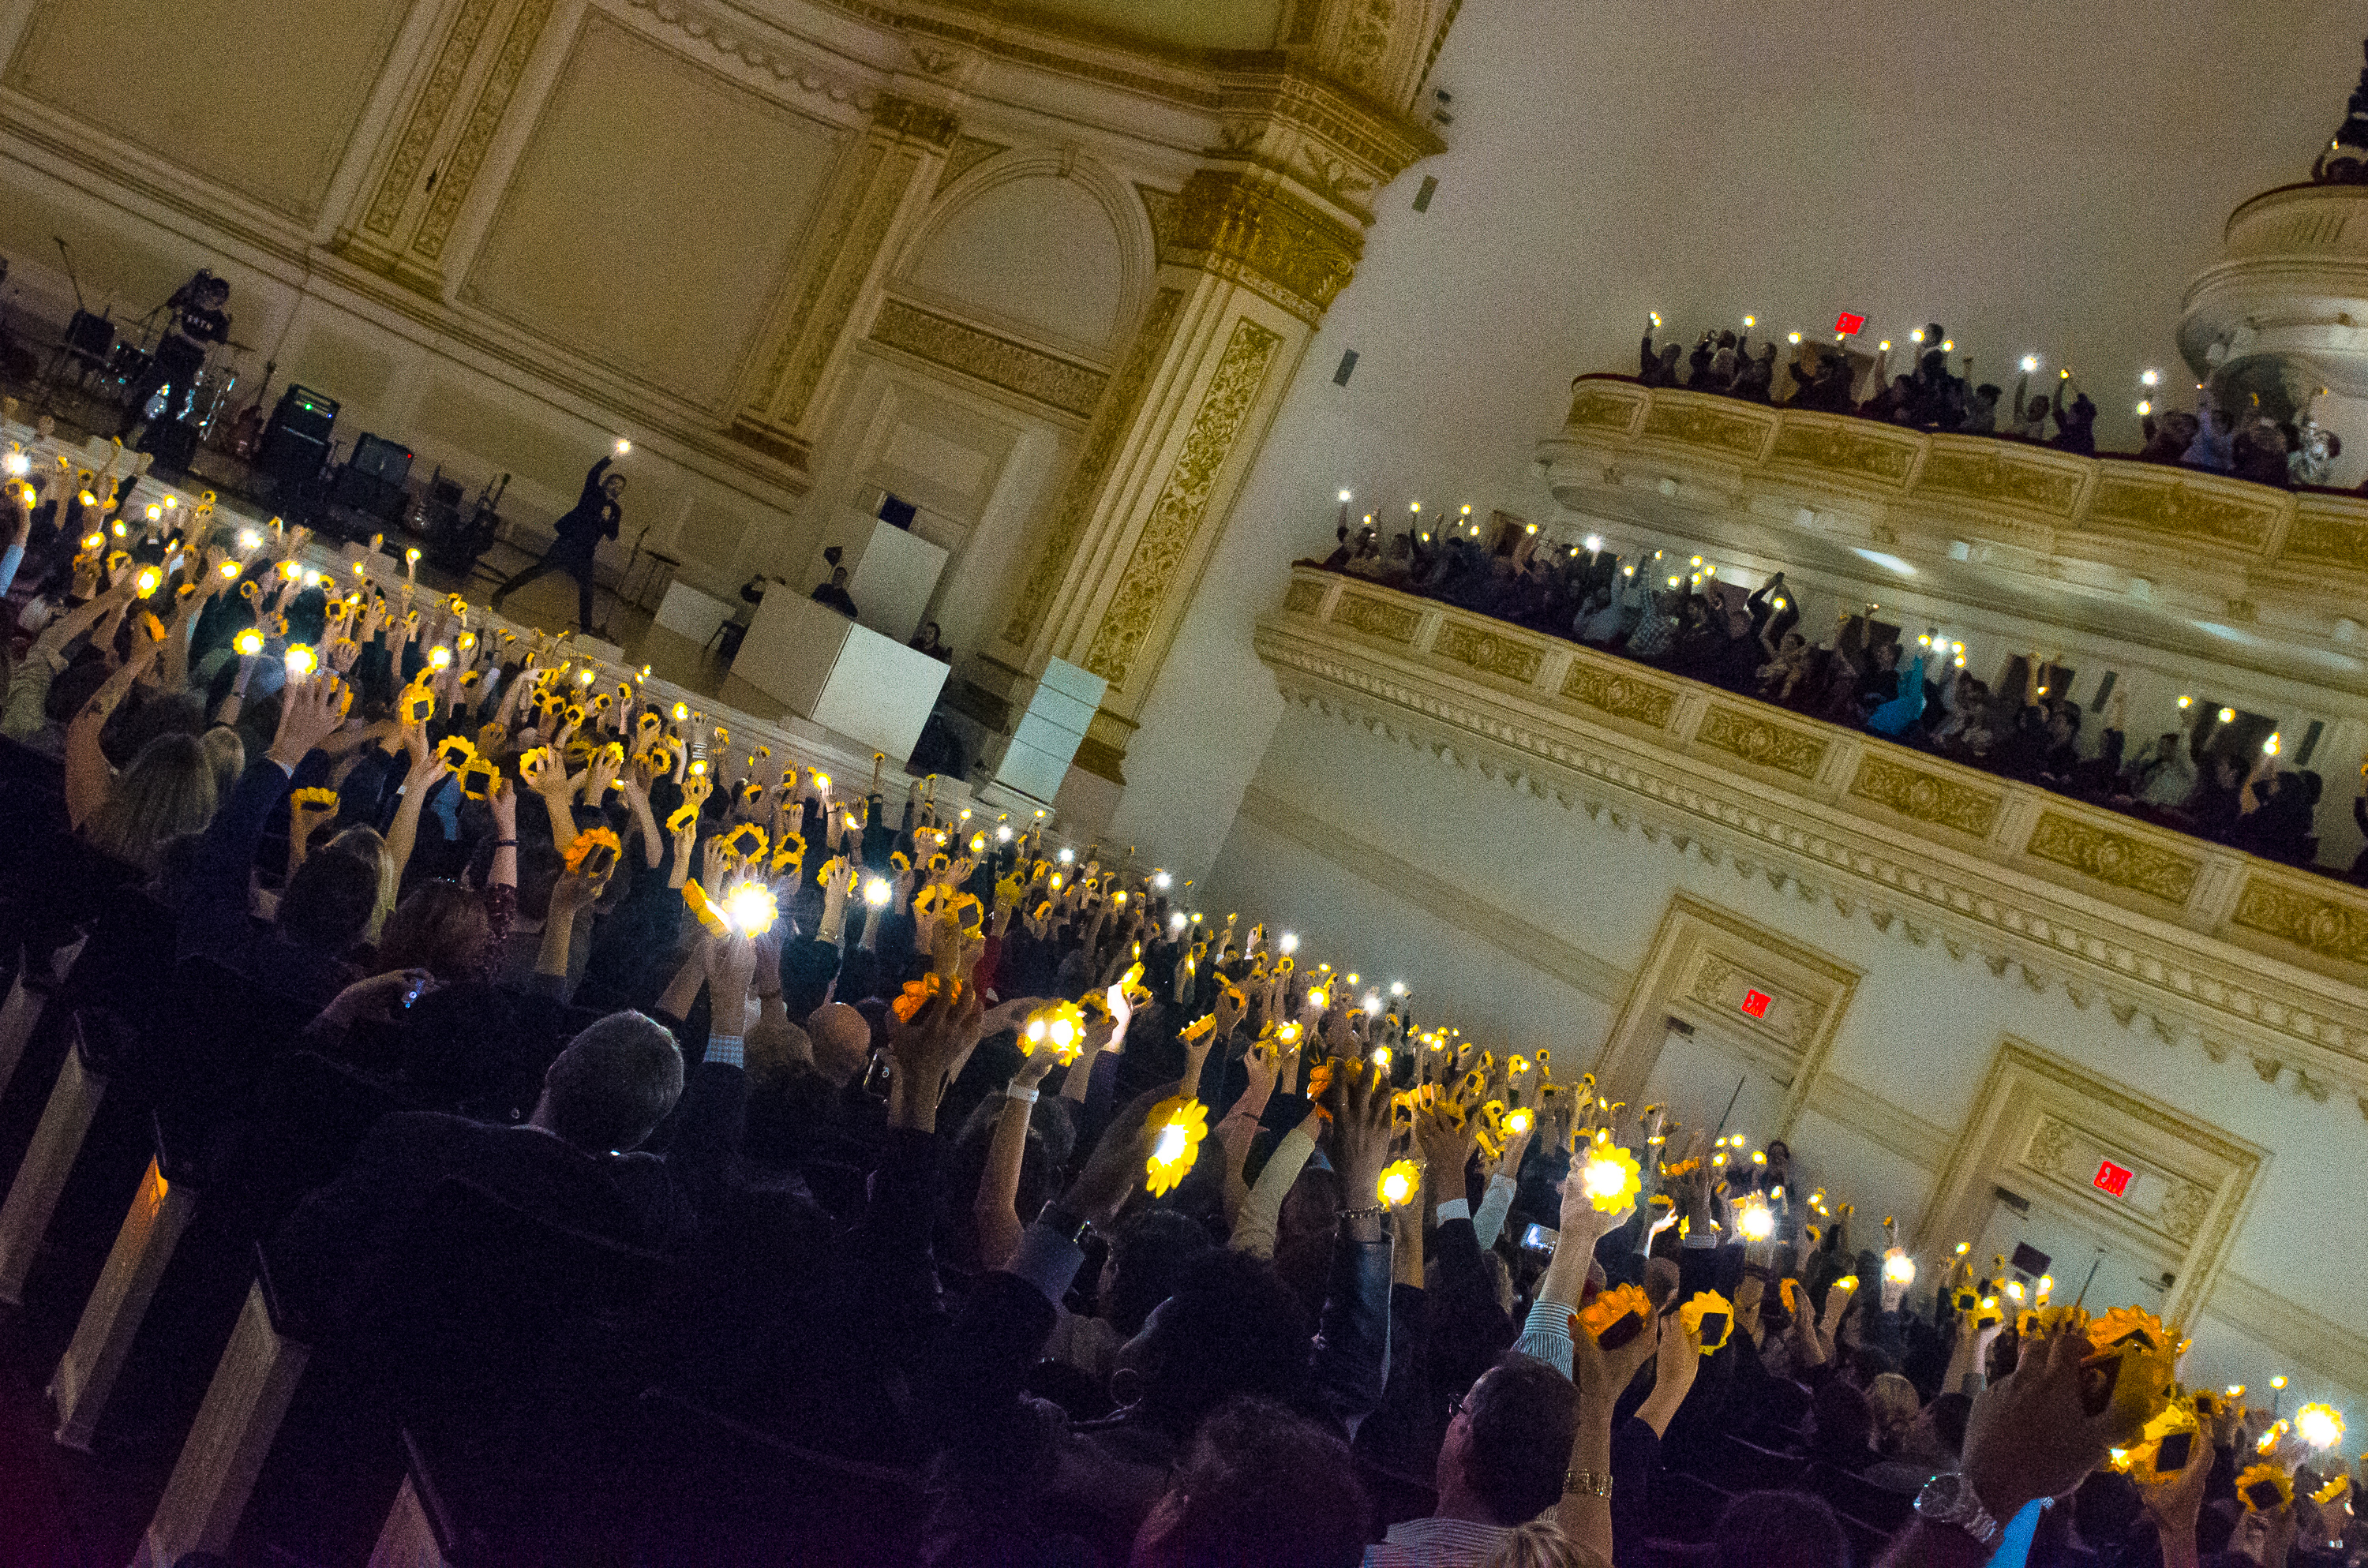 olafur eliasson pathway to paris ben kaye 4 Michael Stipe, Patti Smith, and Others Promote Climate Change Awareness at NYCs Carnegie Hall (11/5)